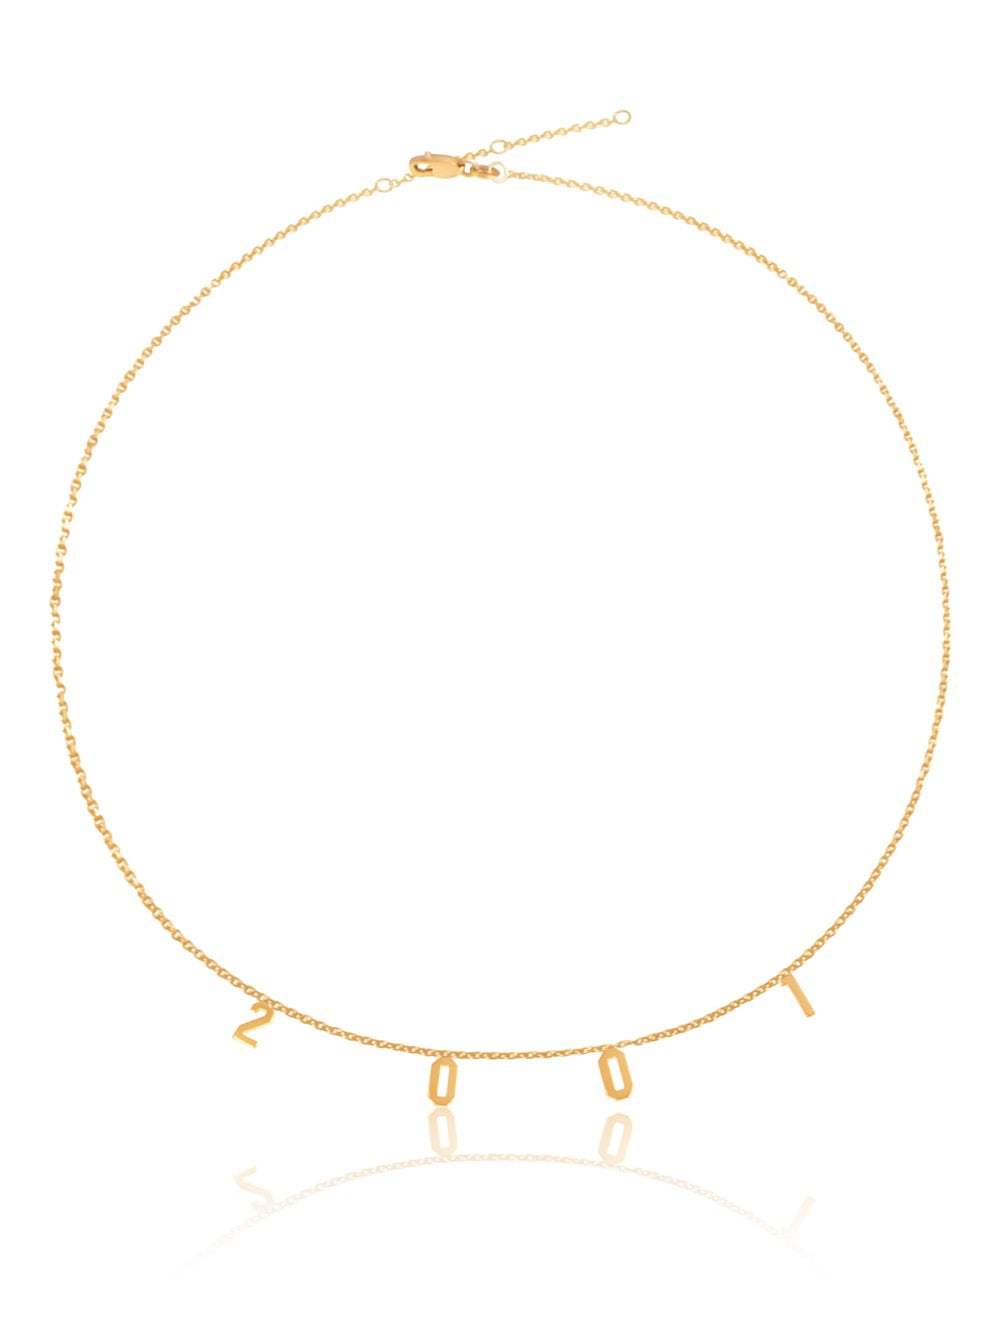 14k Gold personalized Number Necklace